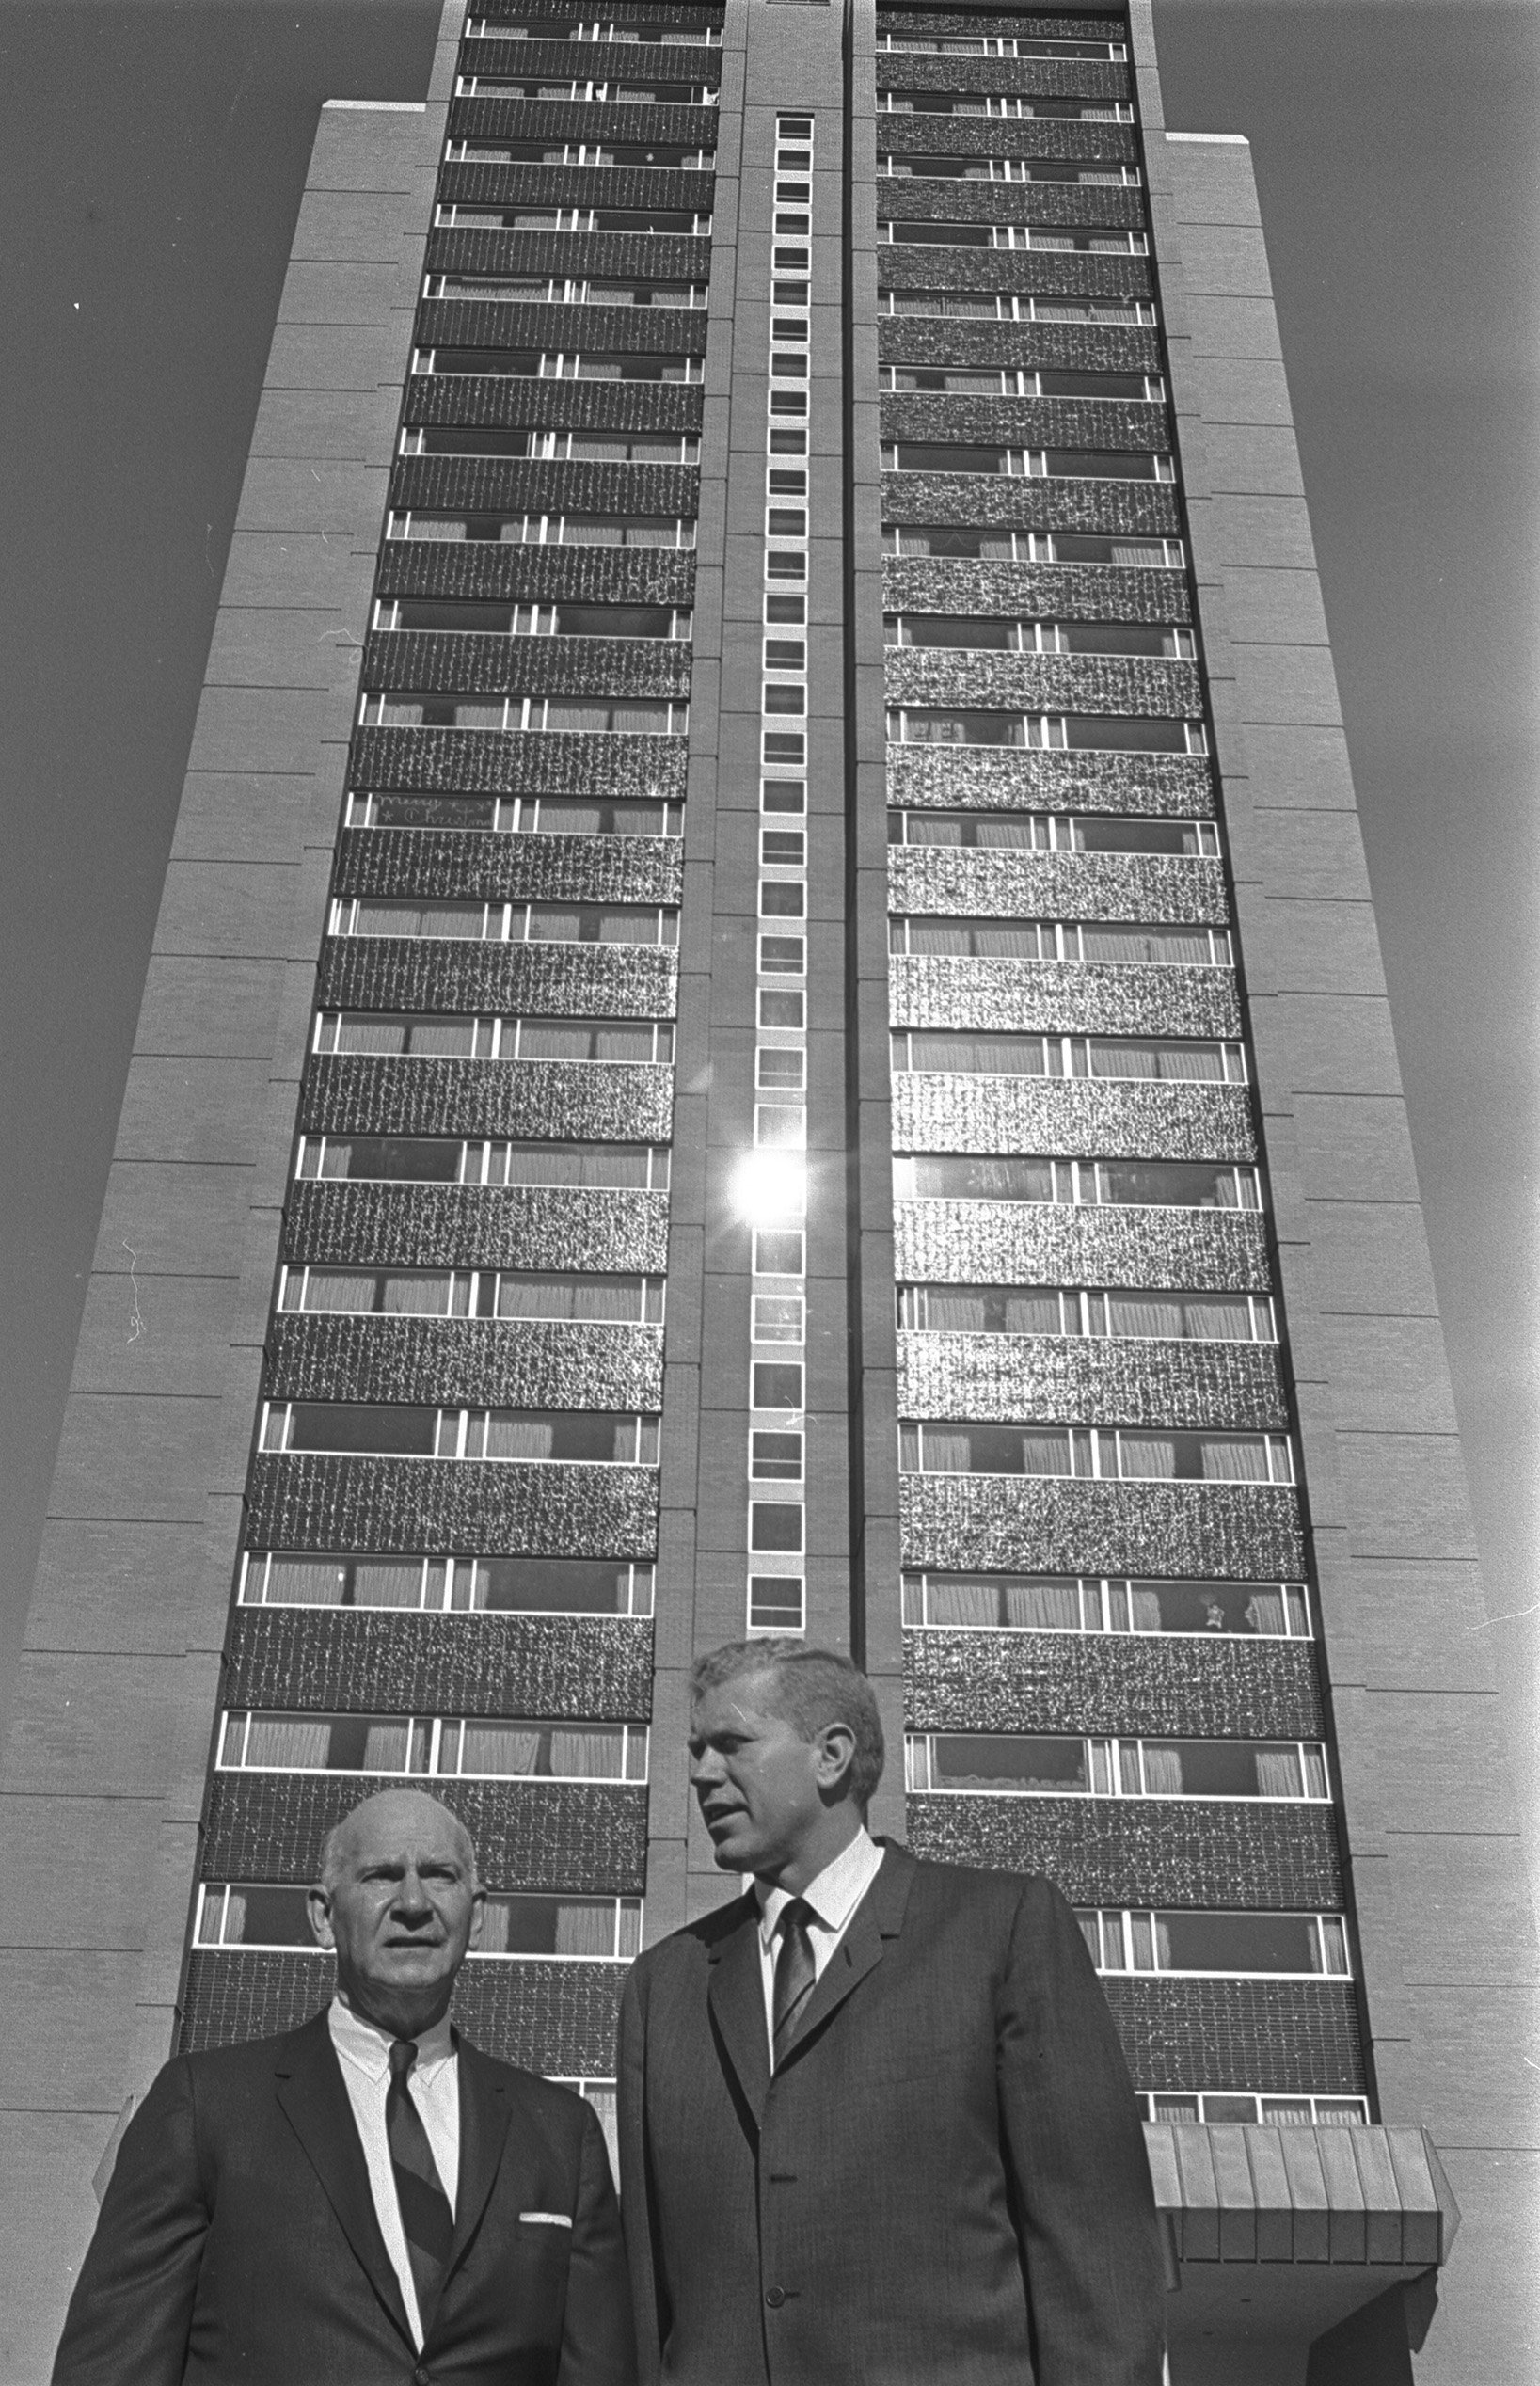 TWU President Dr. John Guinn and Texas House Speaker, Ben Barnes in front of Stark Hall (1967). Courtesy of University of Texas Arlington Libraries